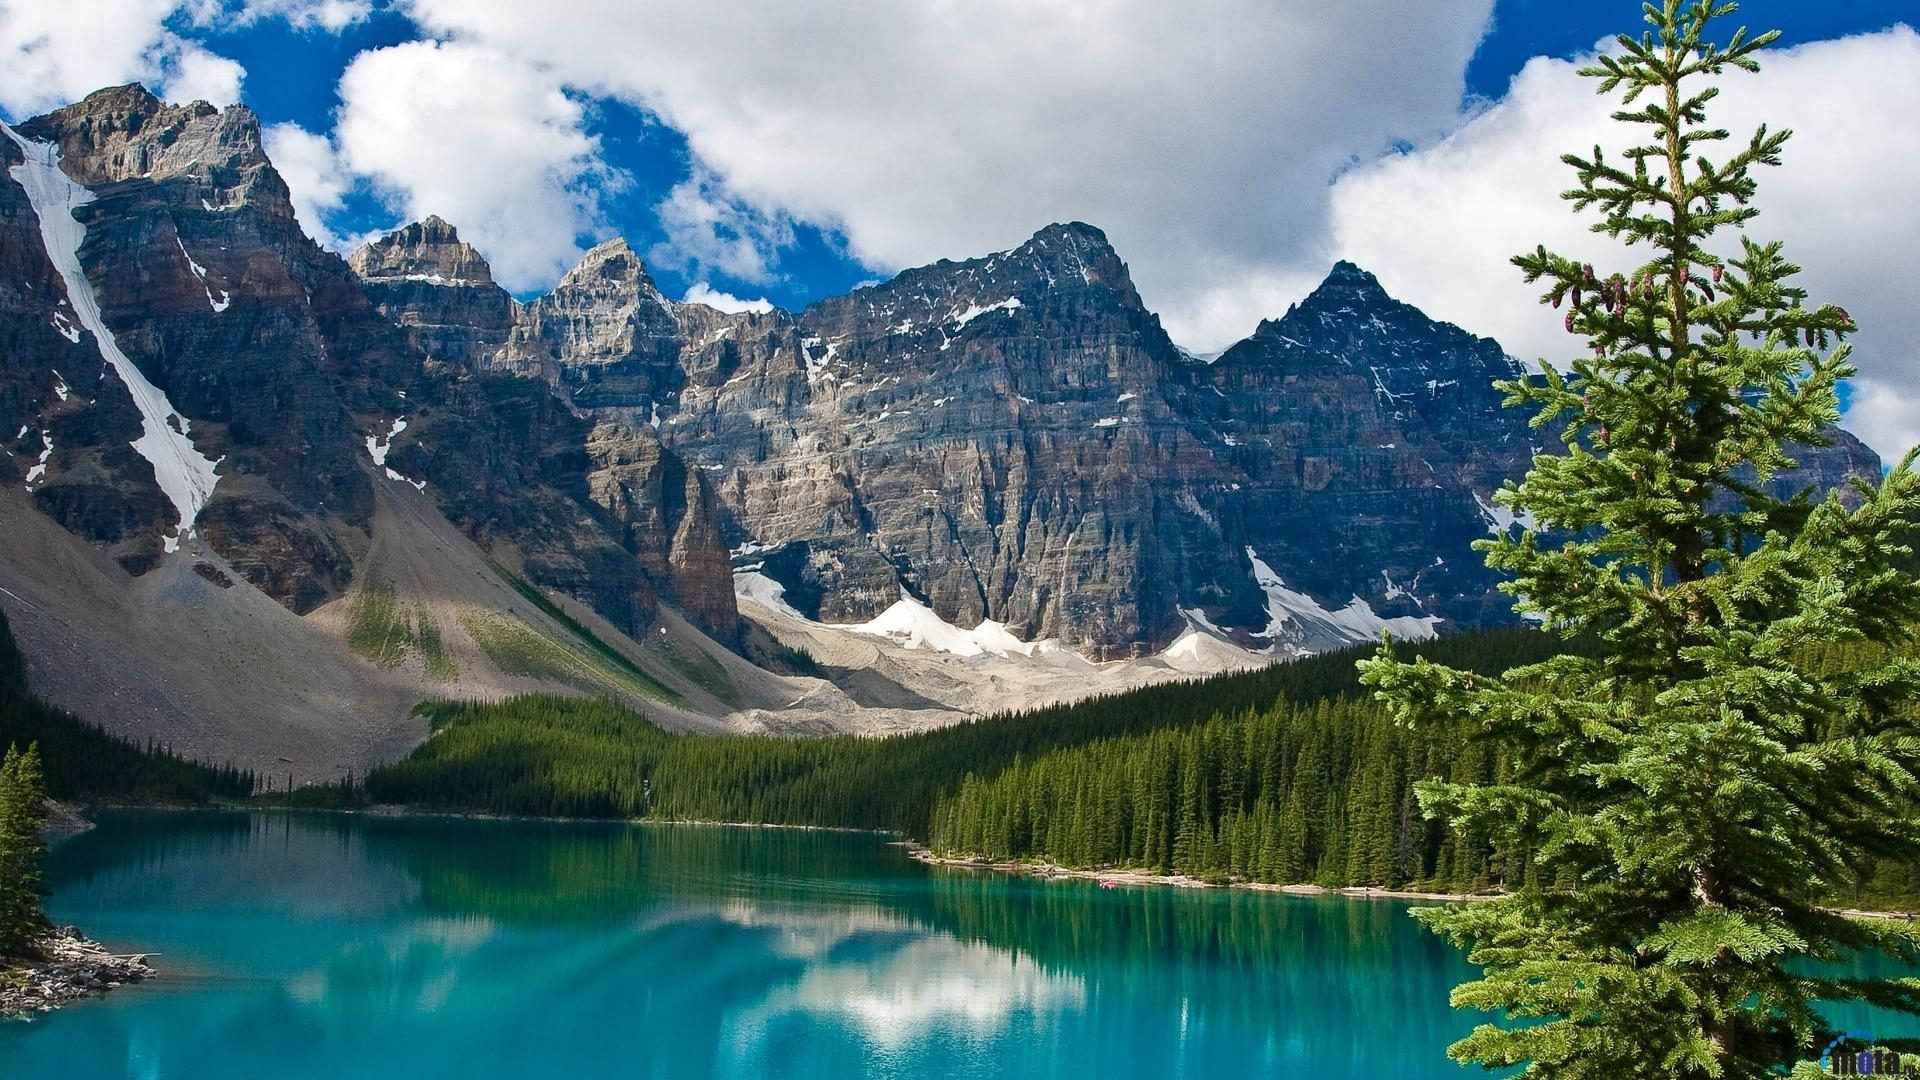 rocky mountains wallpapers high quality | download free